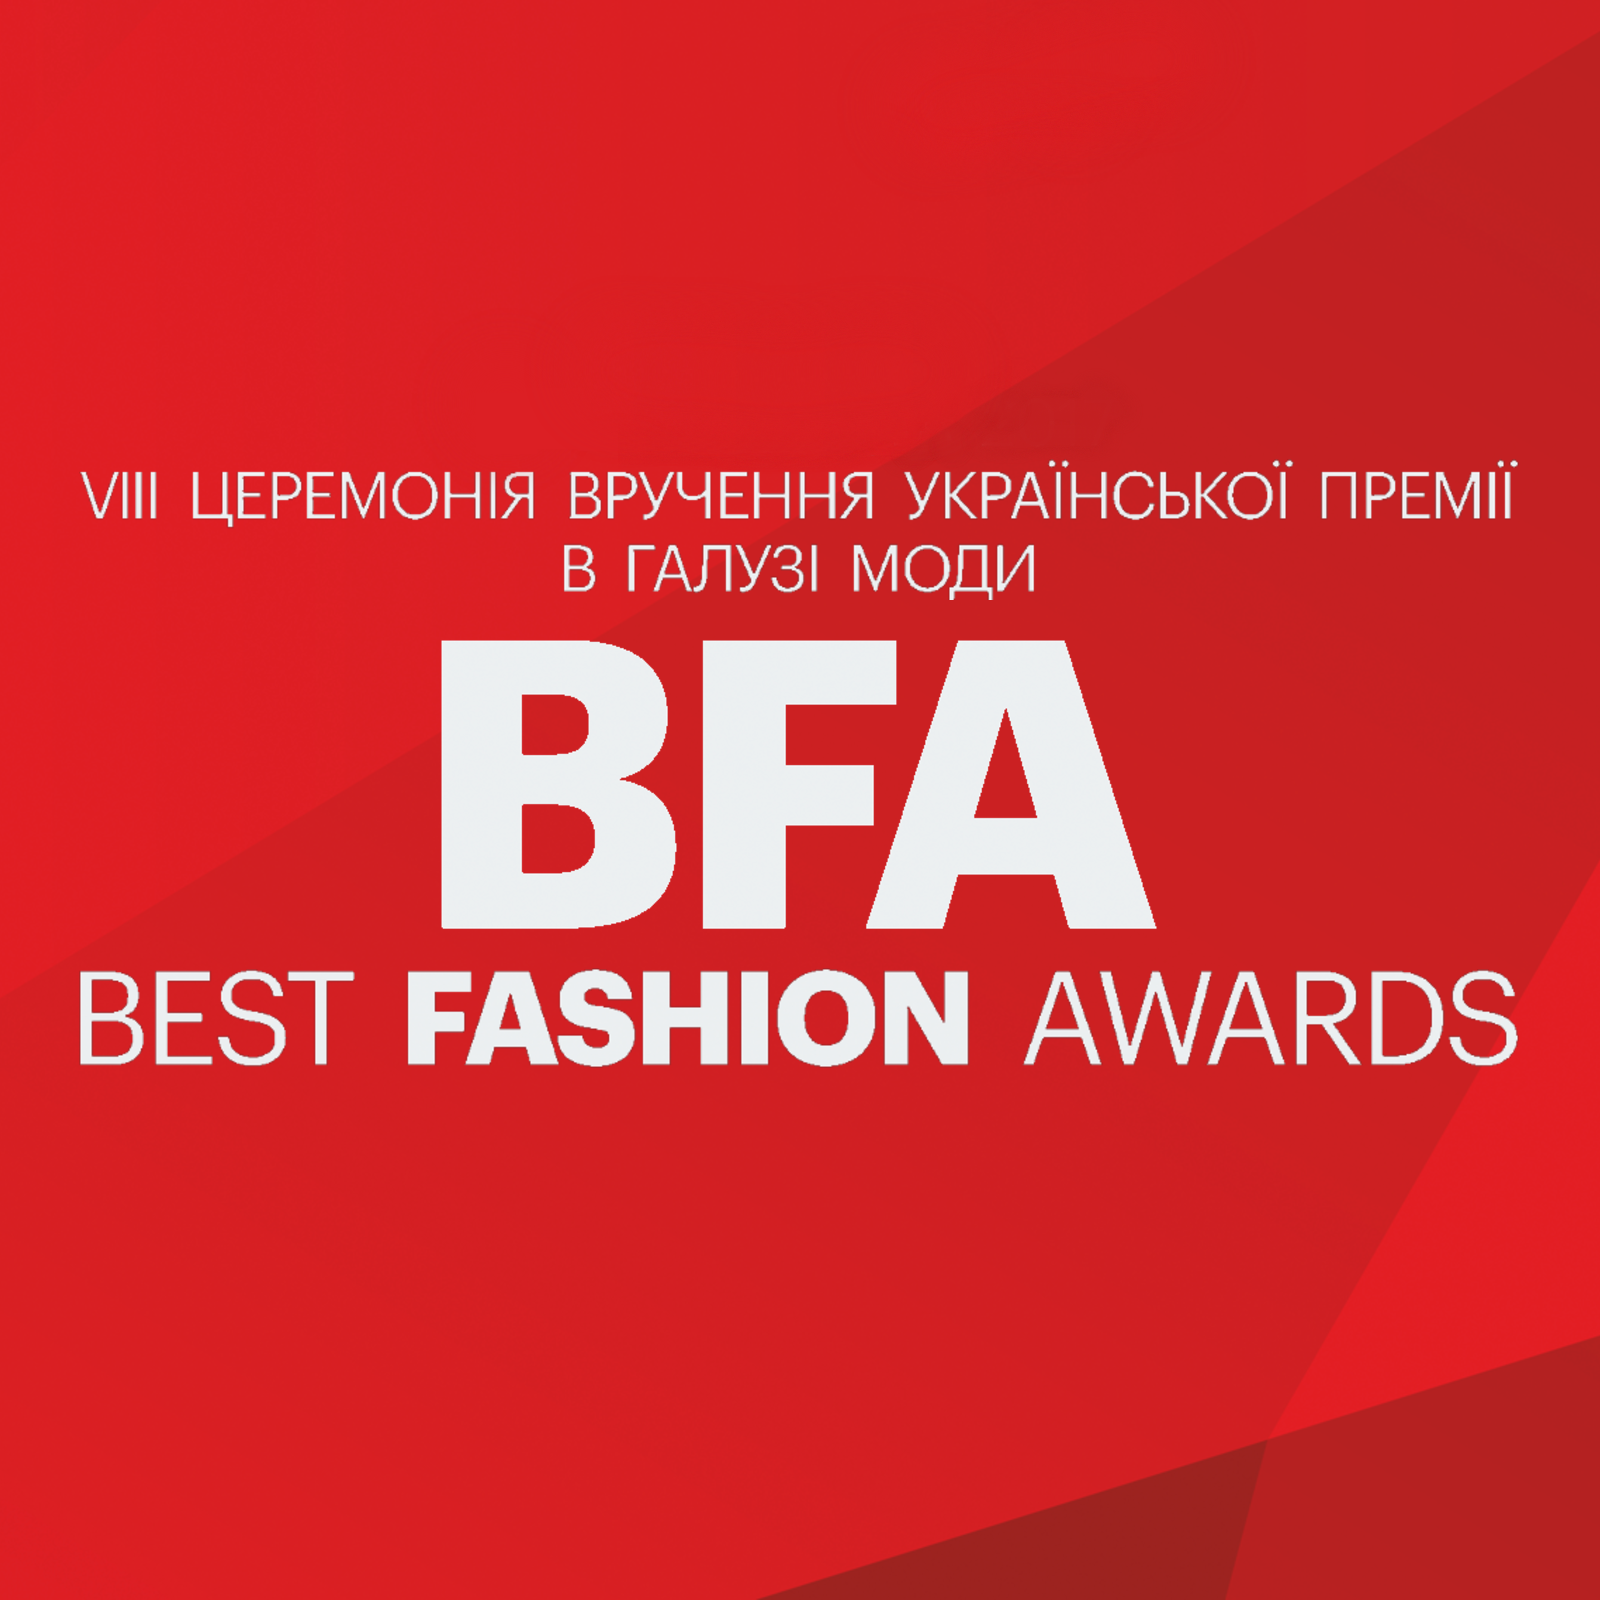 THE DATE OF BEST FASHION AWARDS 2017 CEREMONY HAS BEEN ANNOUNCED